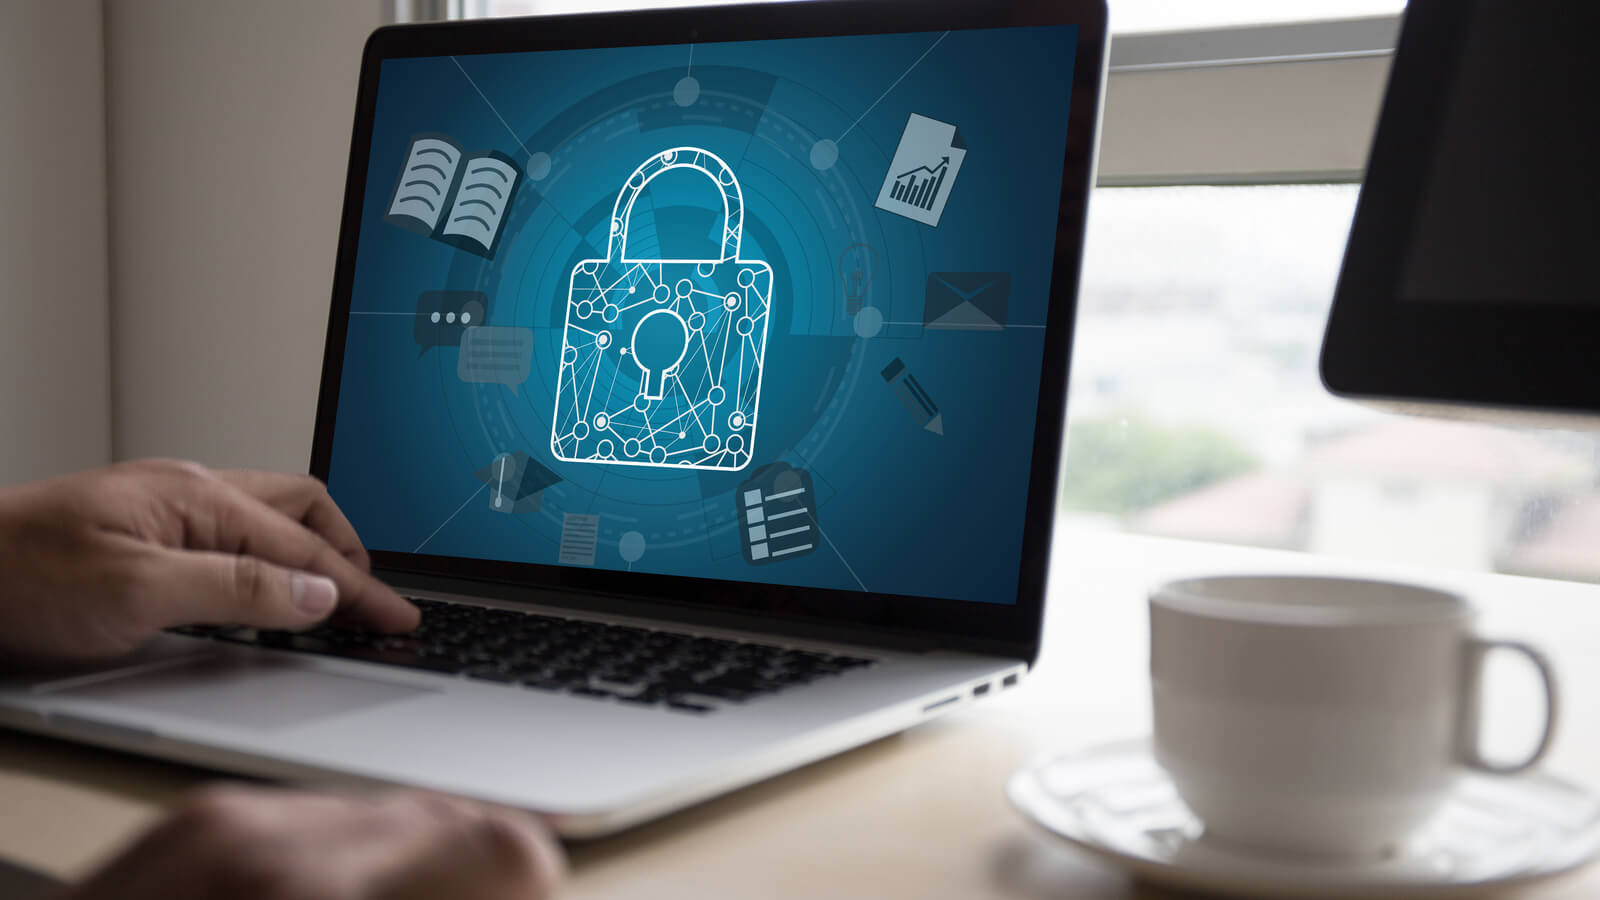 Do All Enterprise Devices Have Security Restrictions Configured